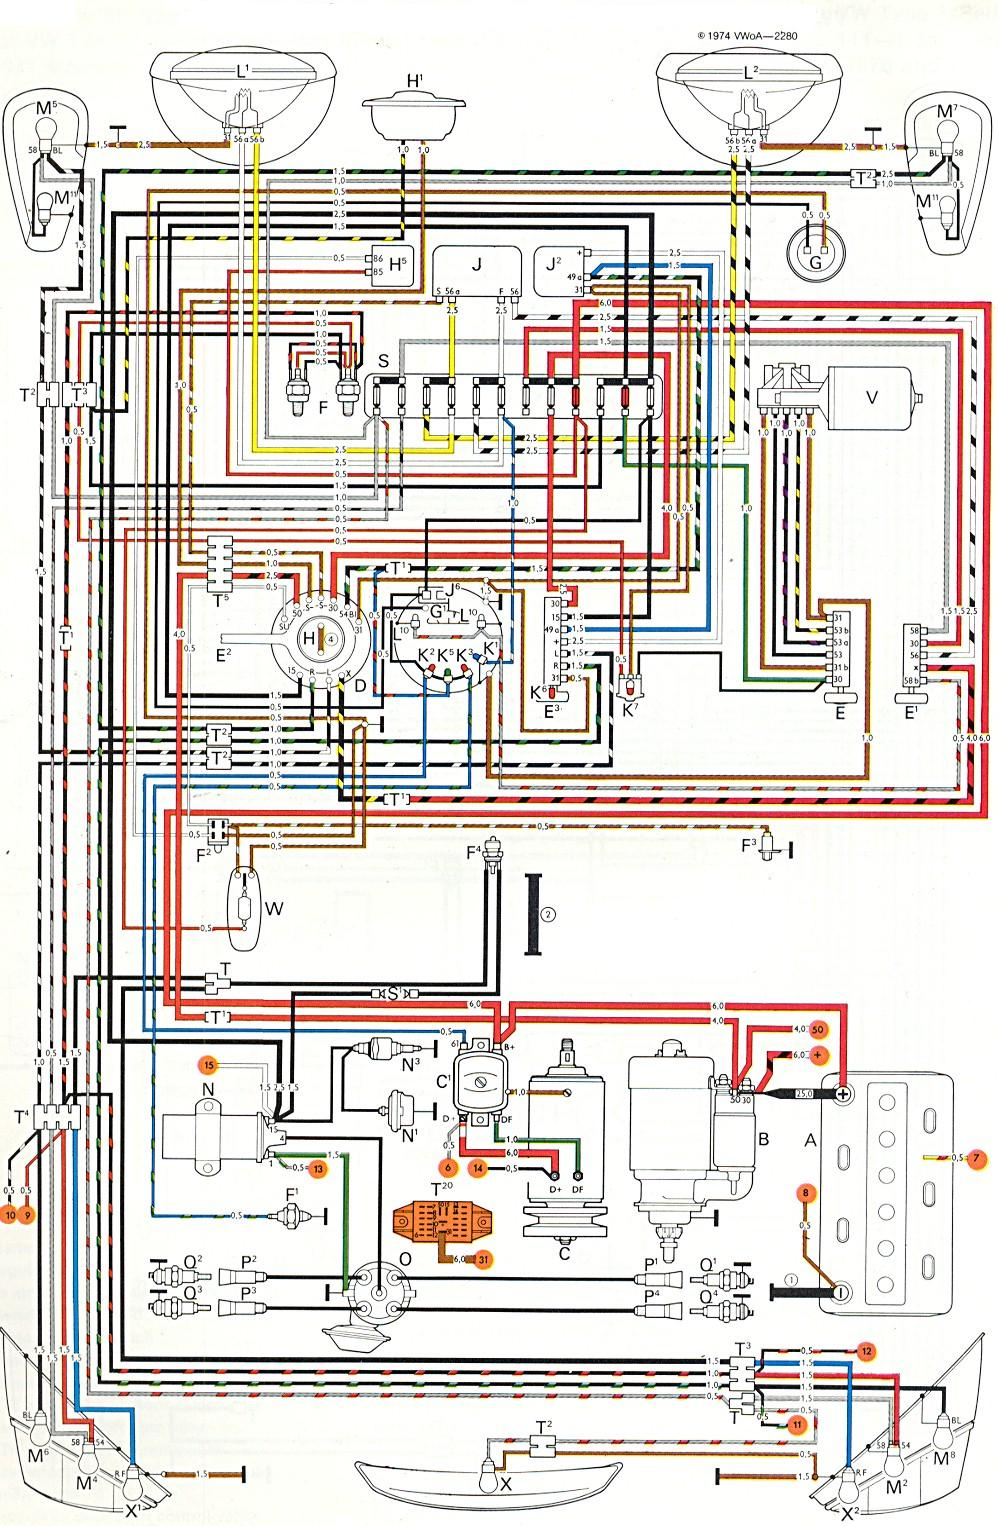 2006 vw beetle wiring diagram today wiring diagramwrg 5047] 2006 vw beetle wiring diagrams 1978 vw beetle wiring diagram 2006 vw beetle wiring diagram